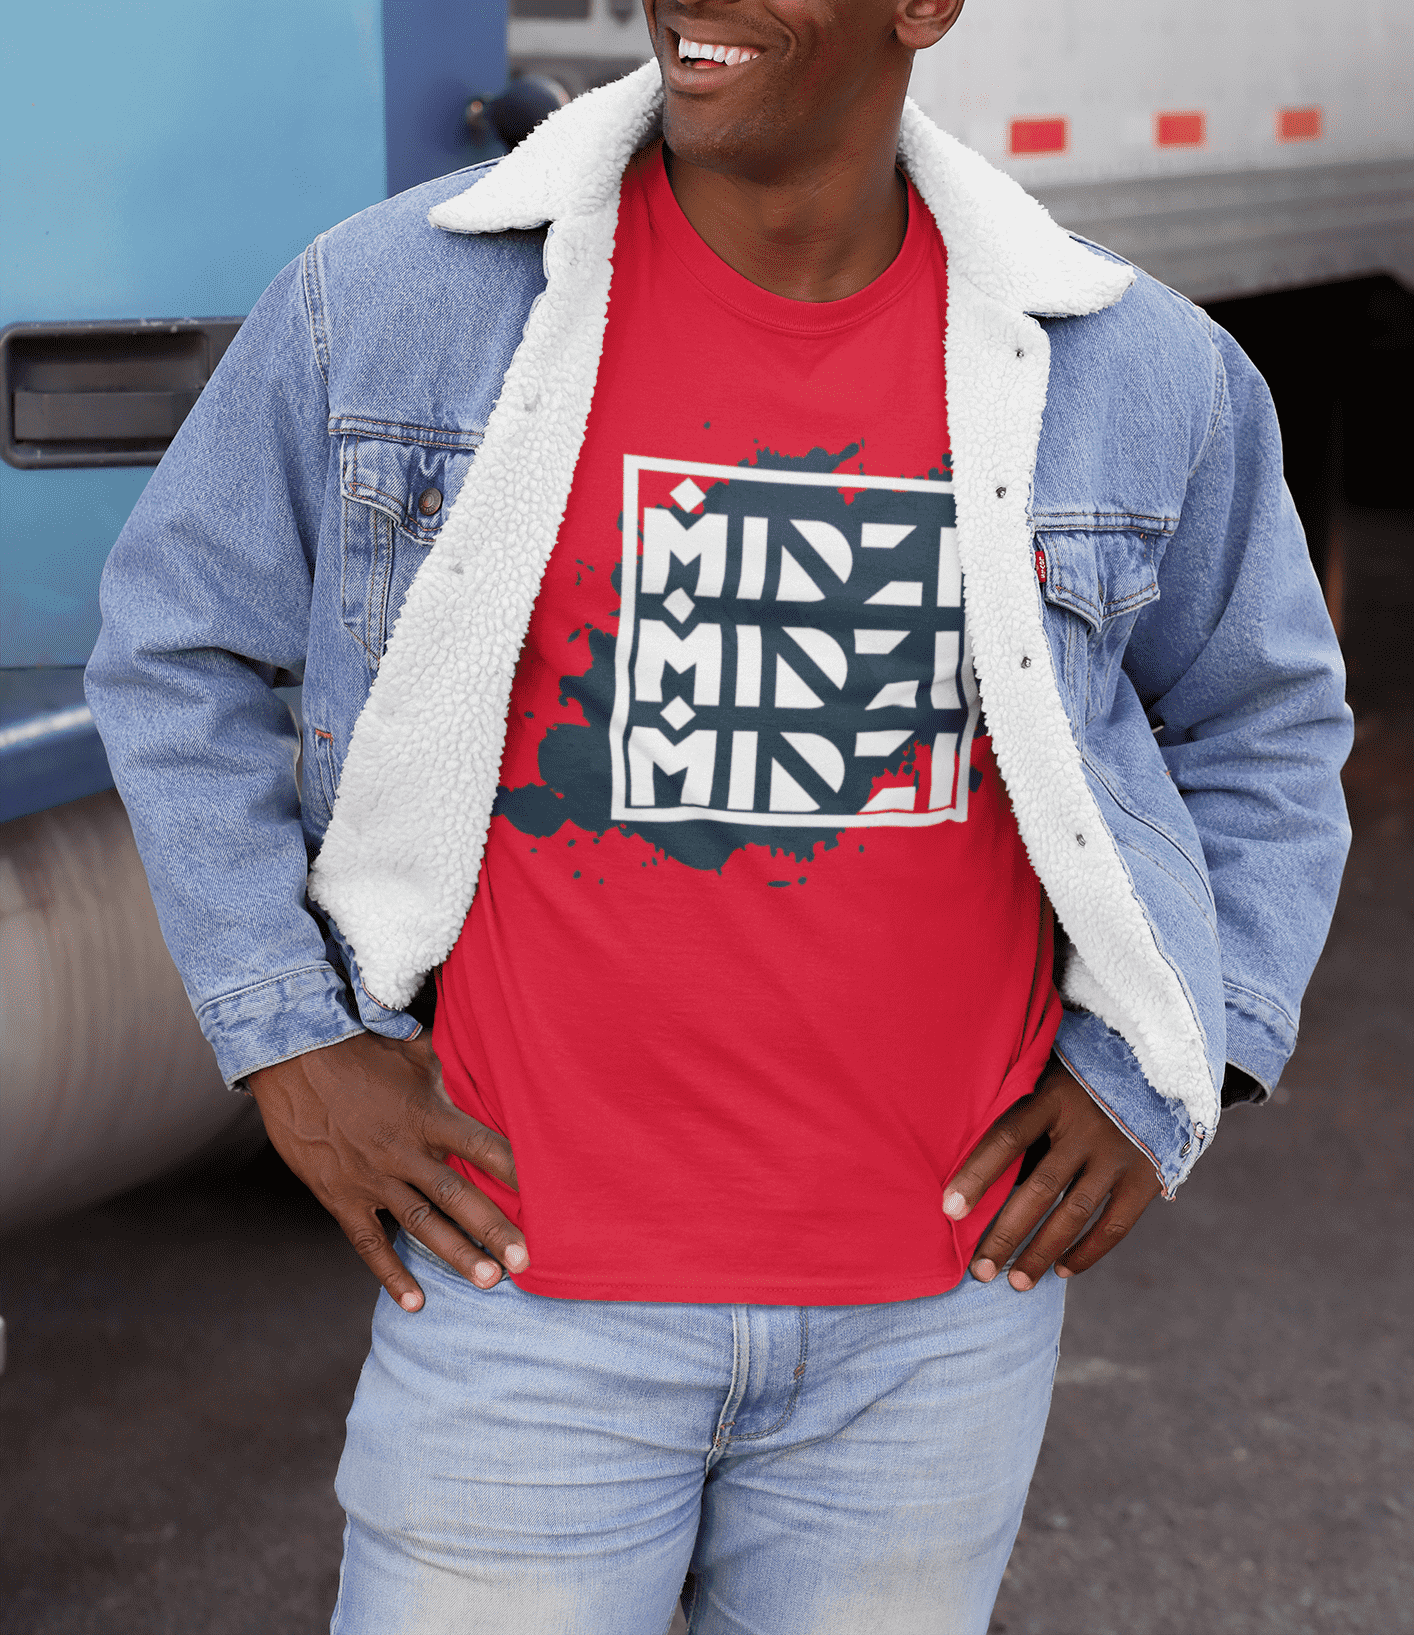 Midzi Ink Spot Graphic Tee